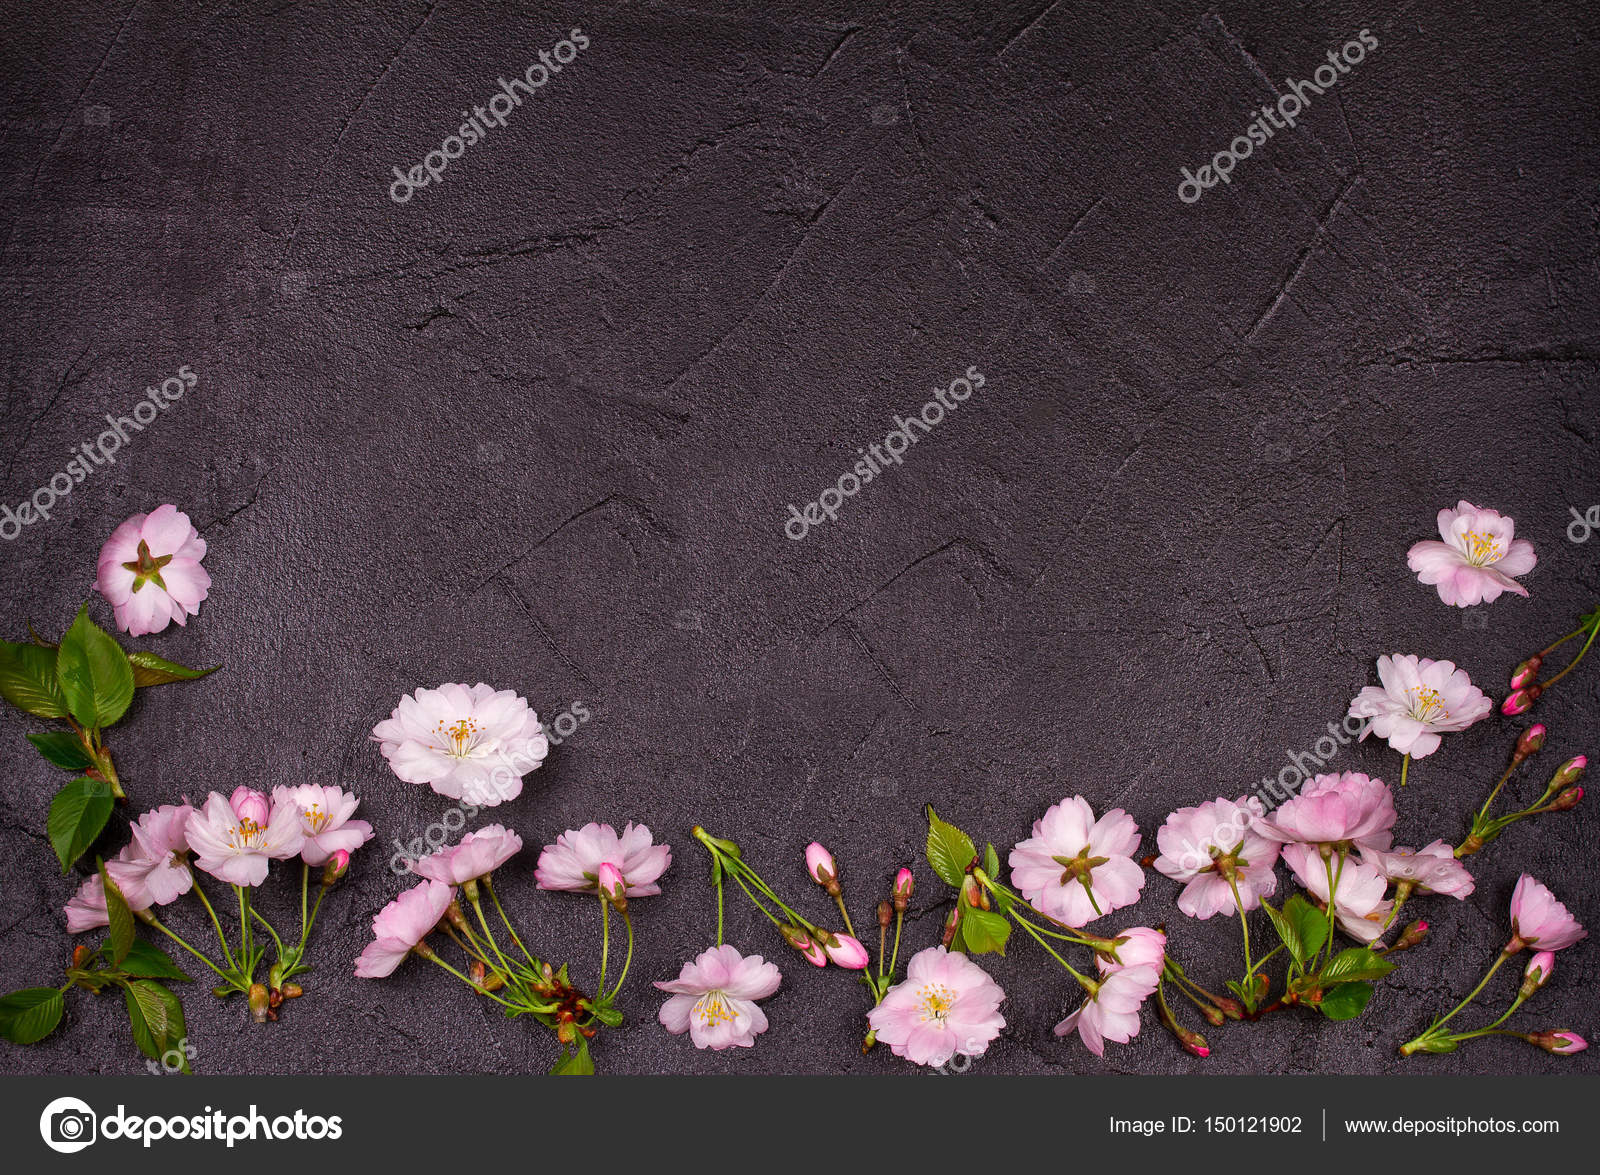 Flower frame on gray shabby chic background springtime blooming flower frame on gray shabby chic background springtime blooming pink spring flowers top mightylinksfo